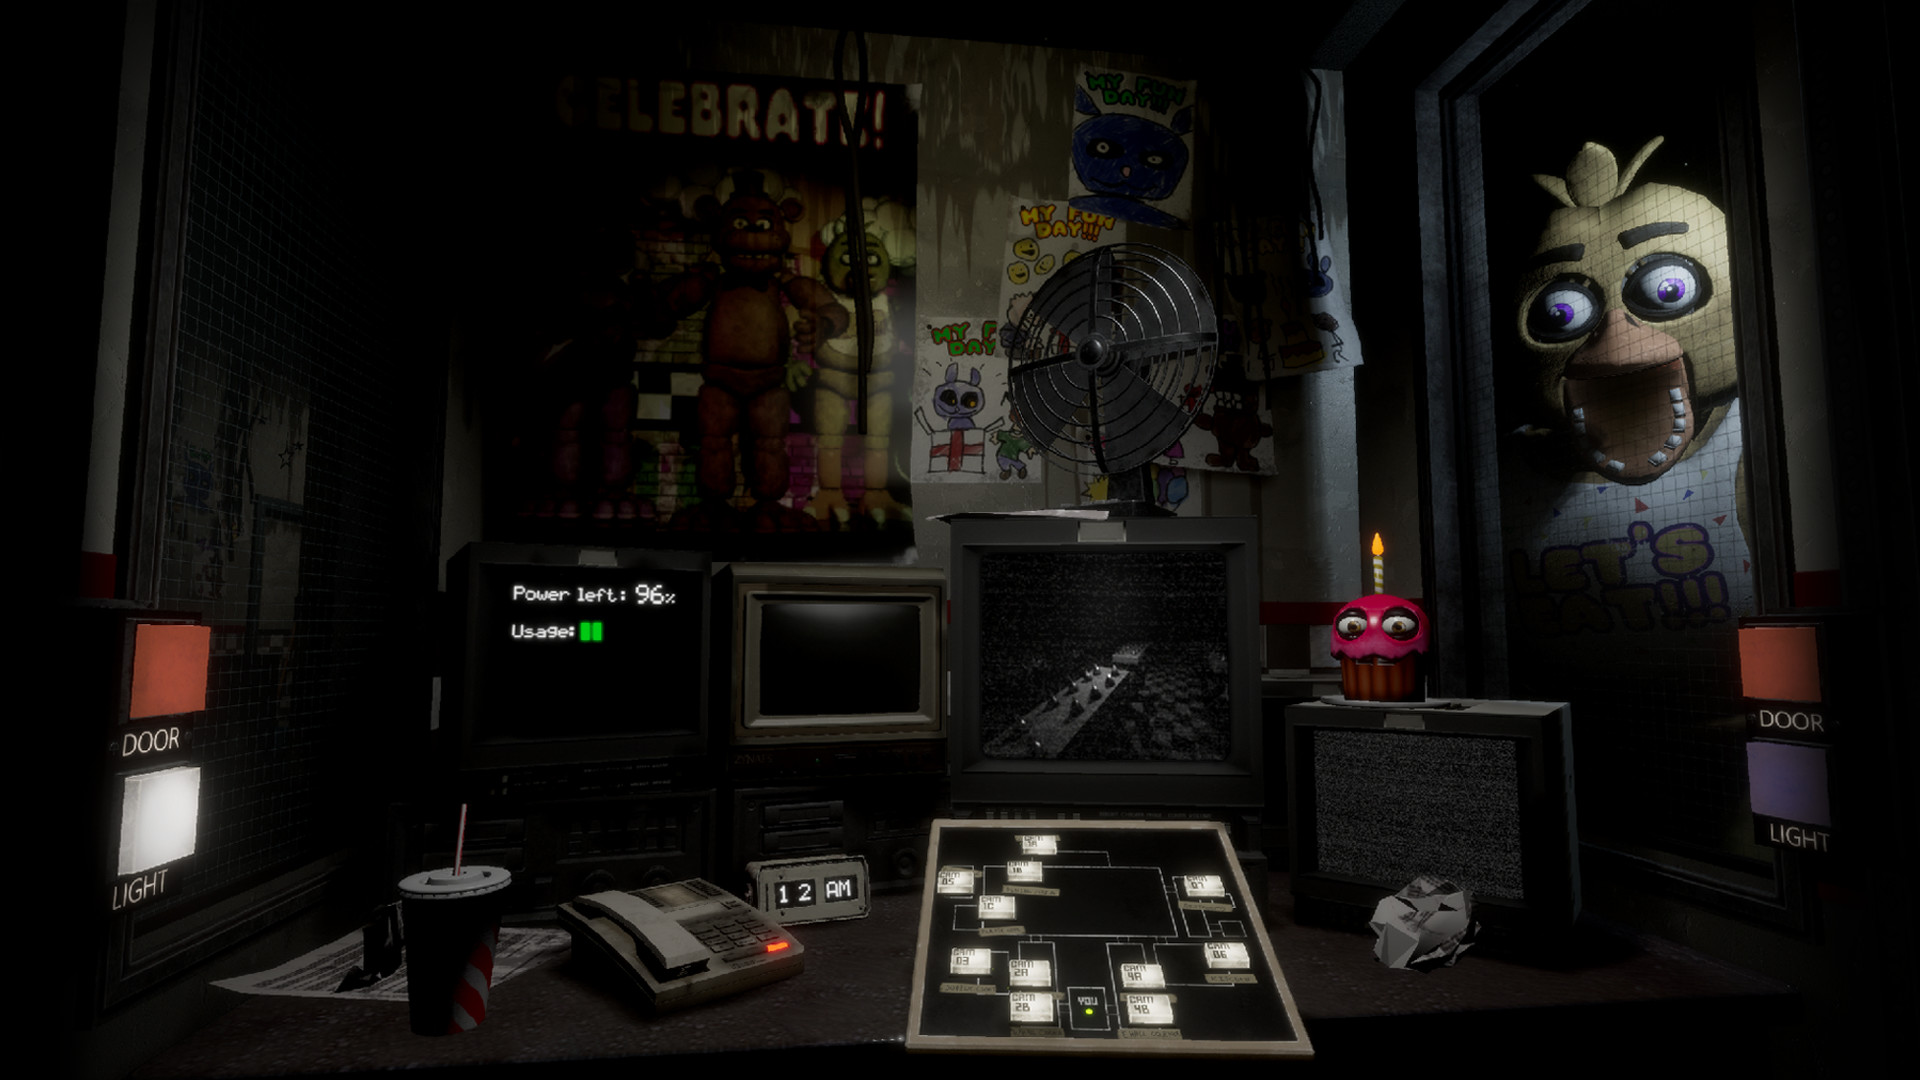 5 Nights At Freddy's Chica five nights at freddy's: help wanted